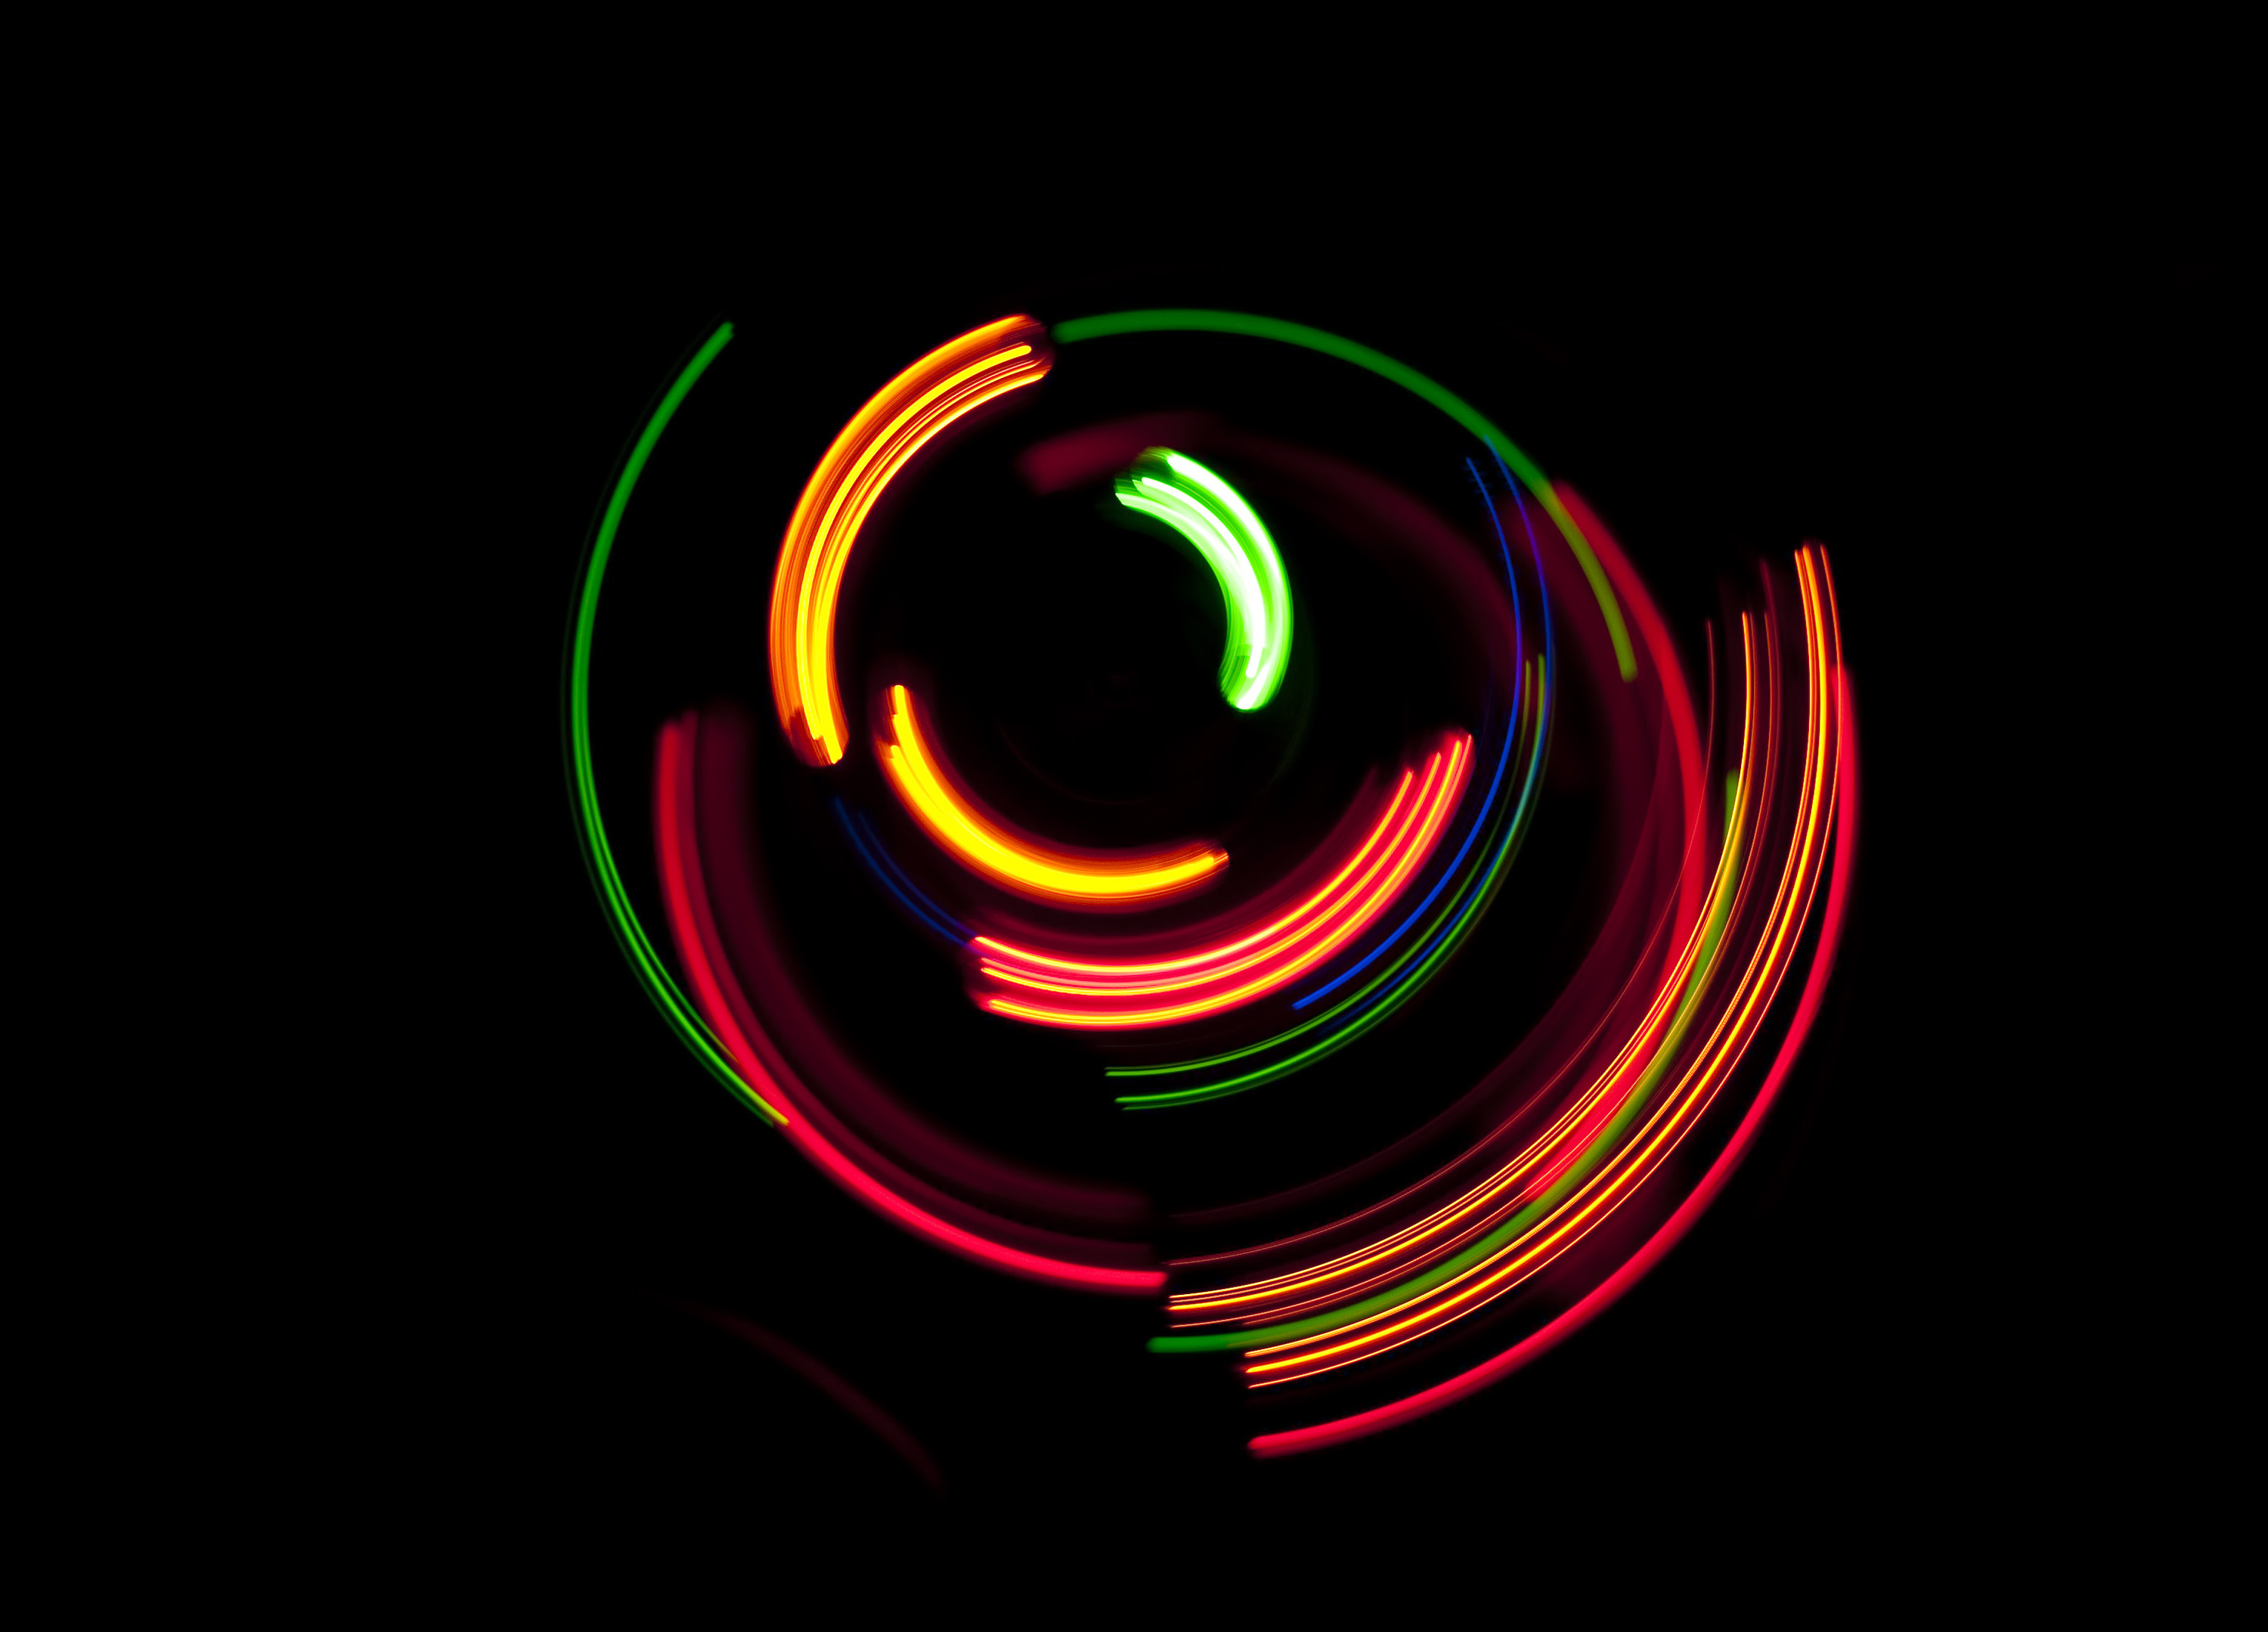 an interesting background image composed of bright vividly coloured arcs of light